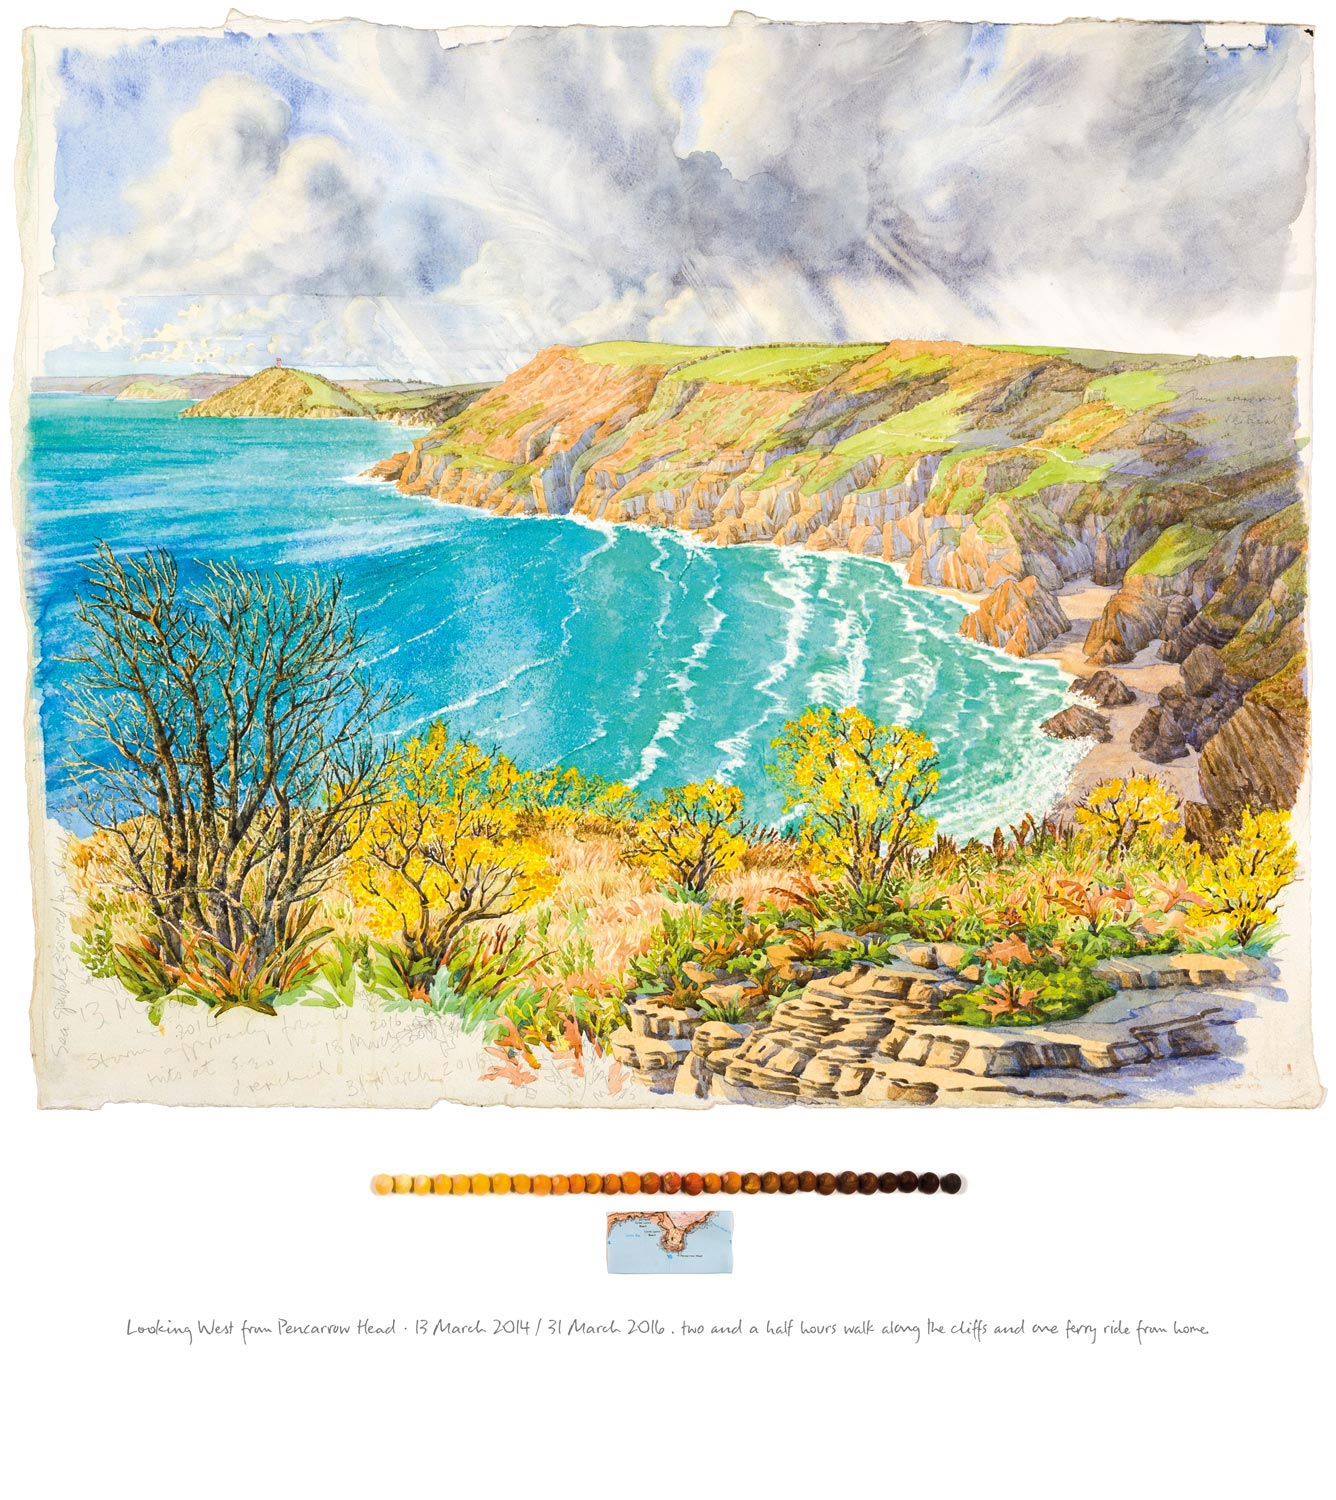 Tony Foster ,  Looking West from Pencarrow Head , 2016